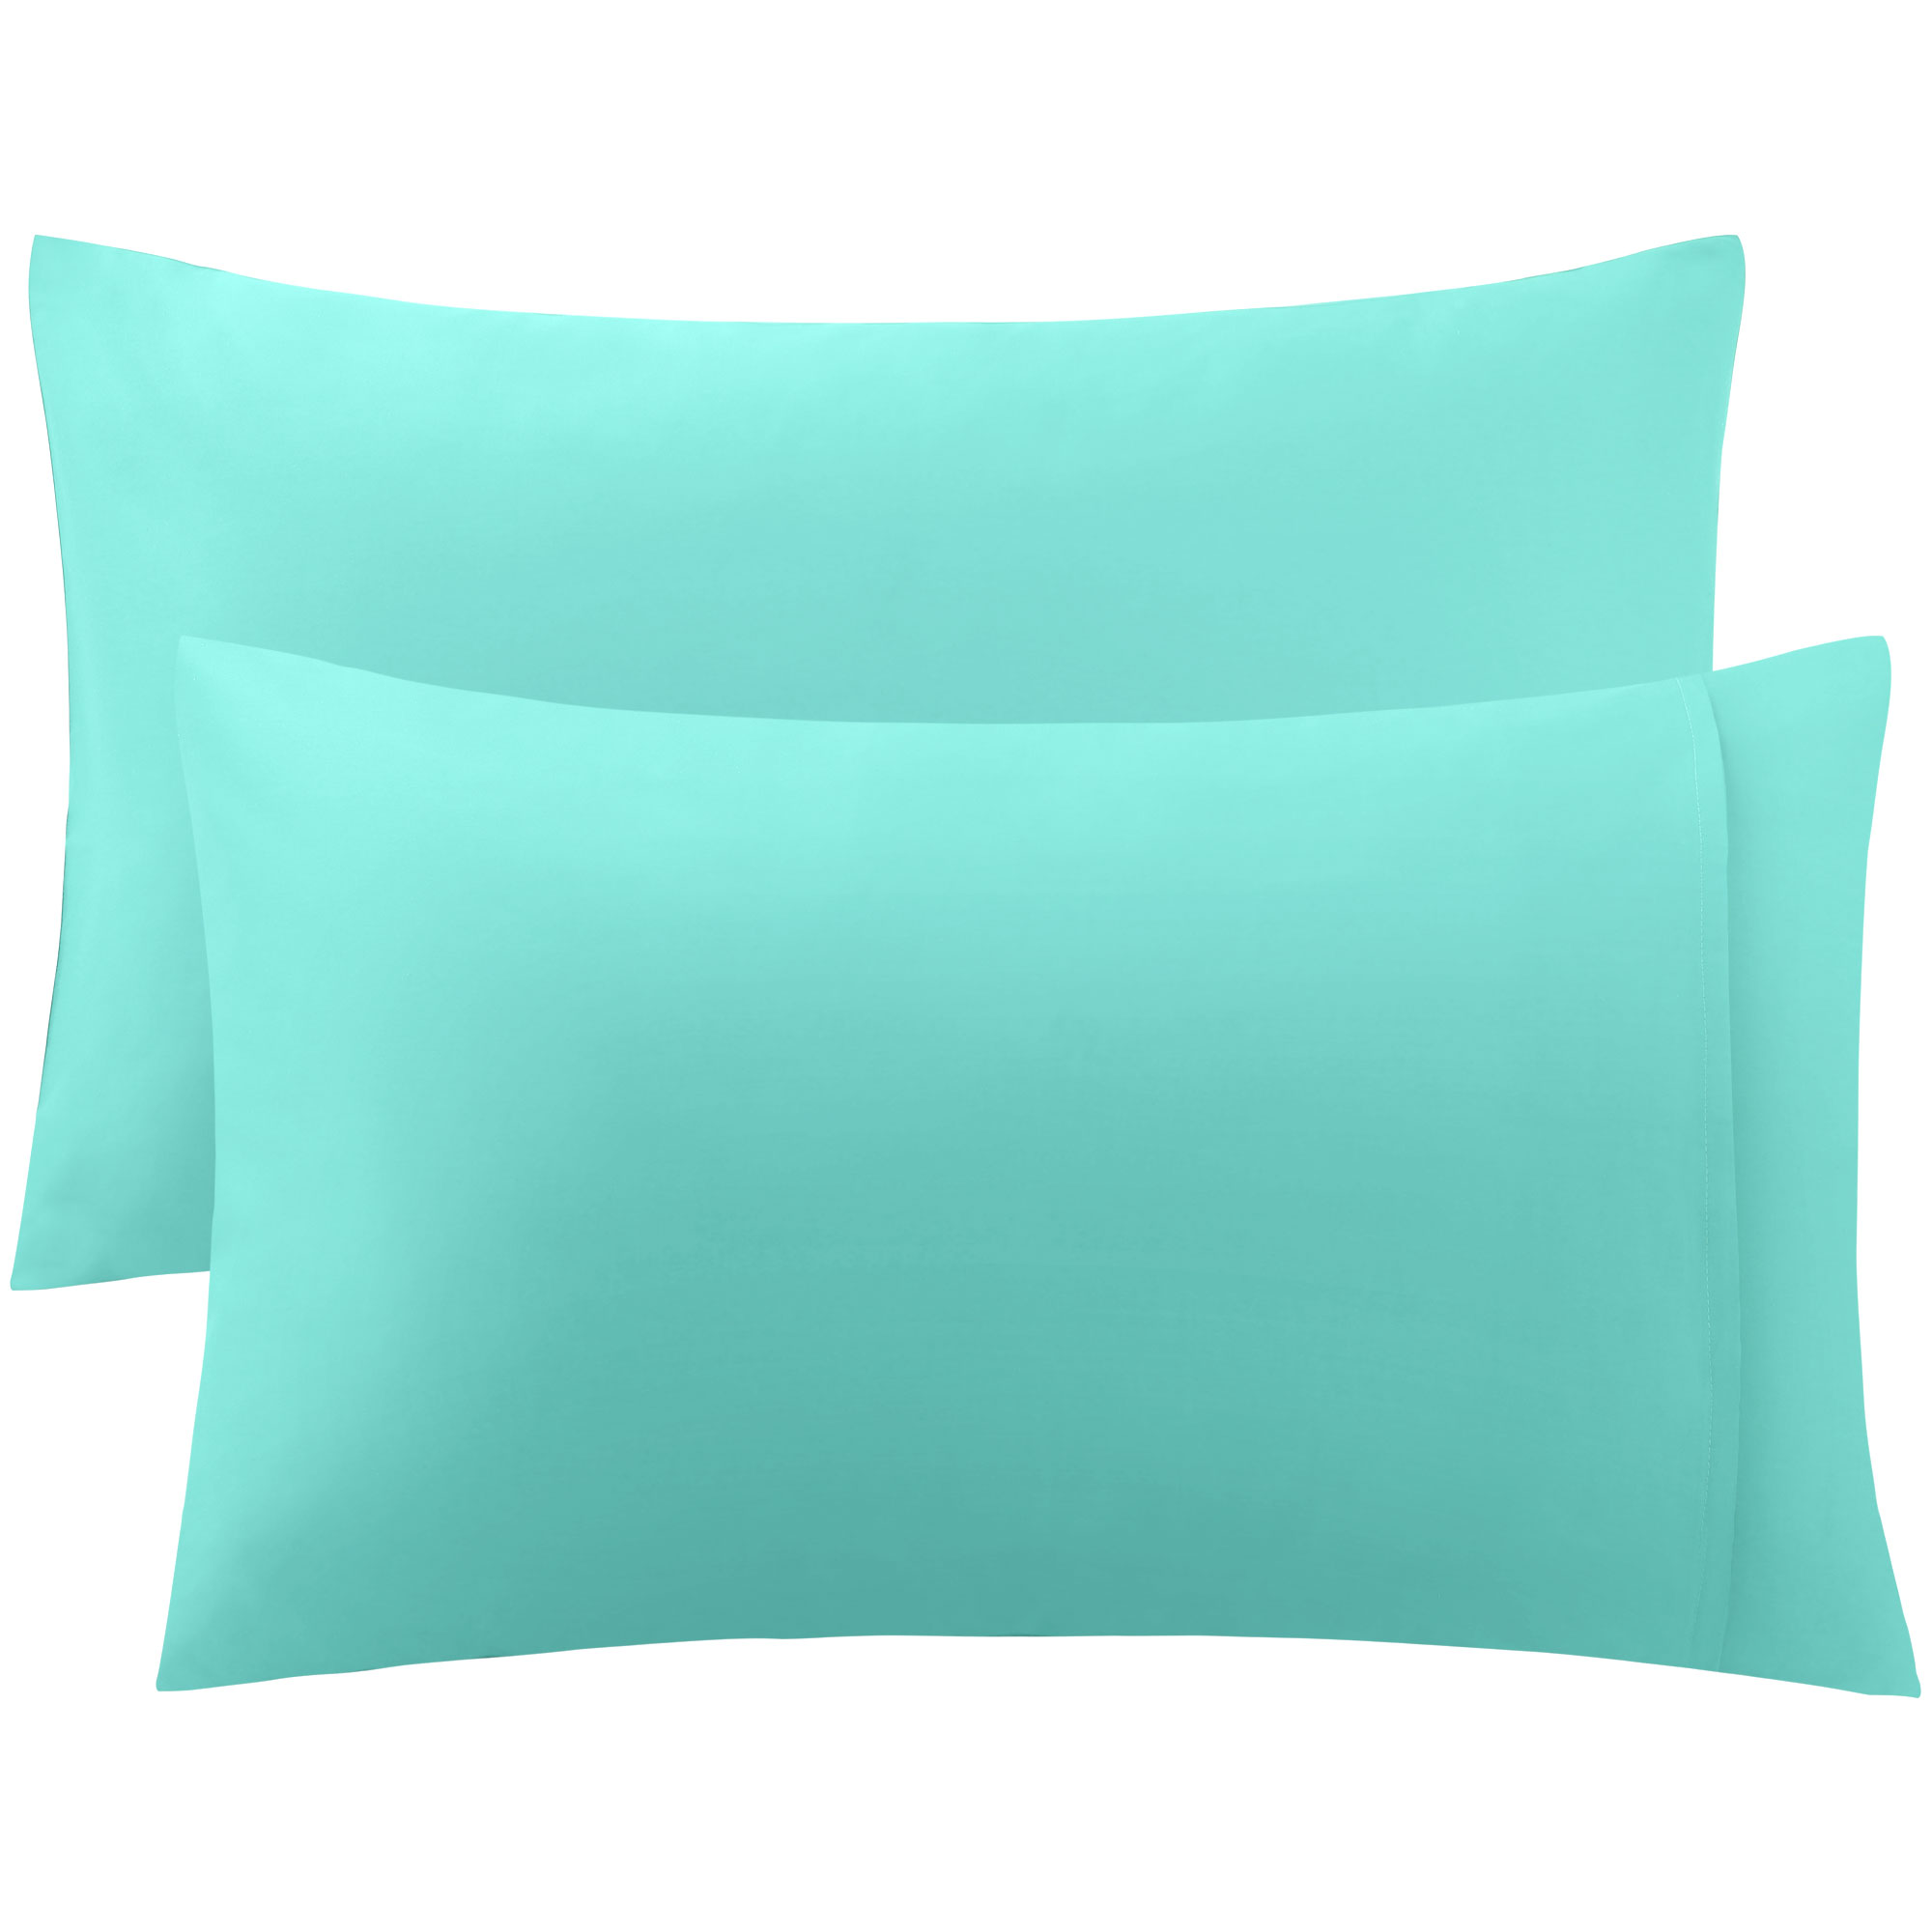 PiccoCasa 300 Thread Count Egyptian Cotton King Size Pillowcases Pillow Cases Covers Set of 2 Light Blue